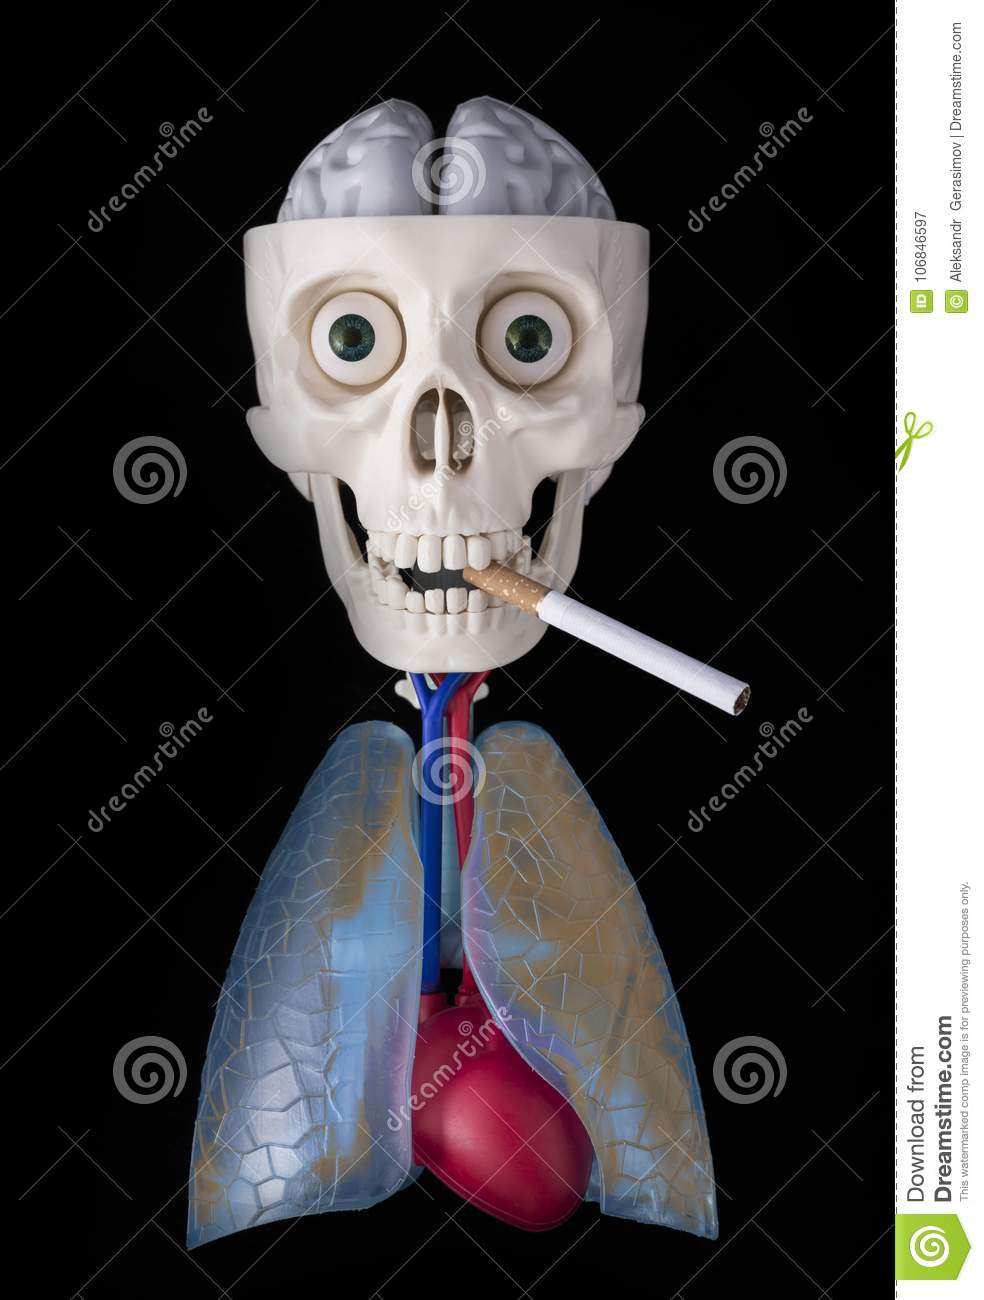 Skeleton, human skull in the teeth of a cigarette, dirty lung, heart and brain on a black background